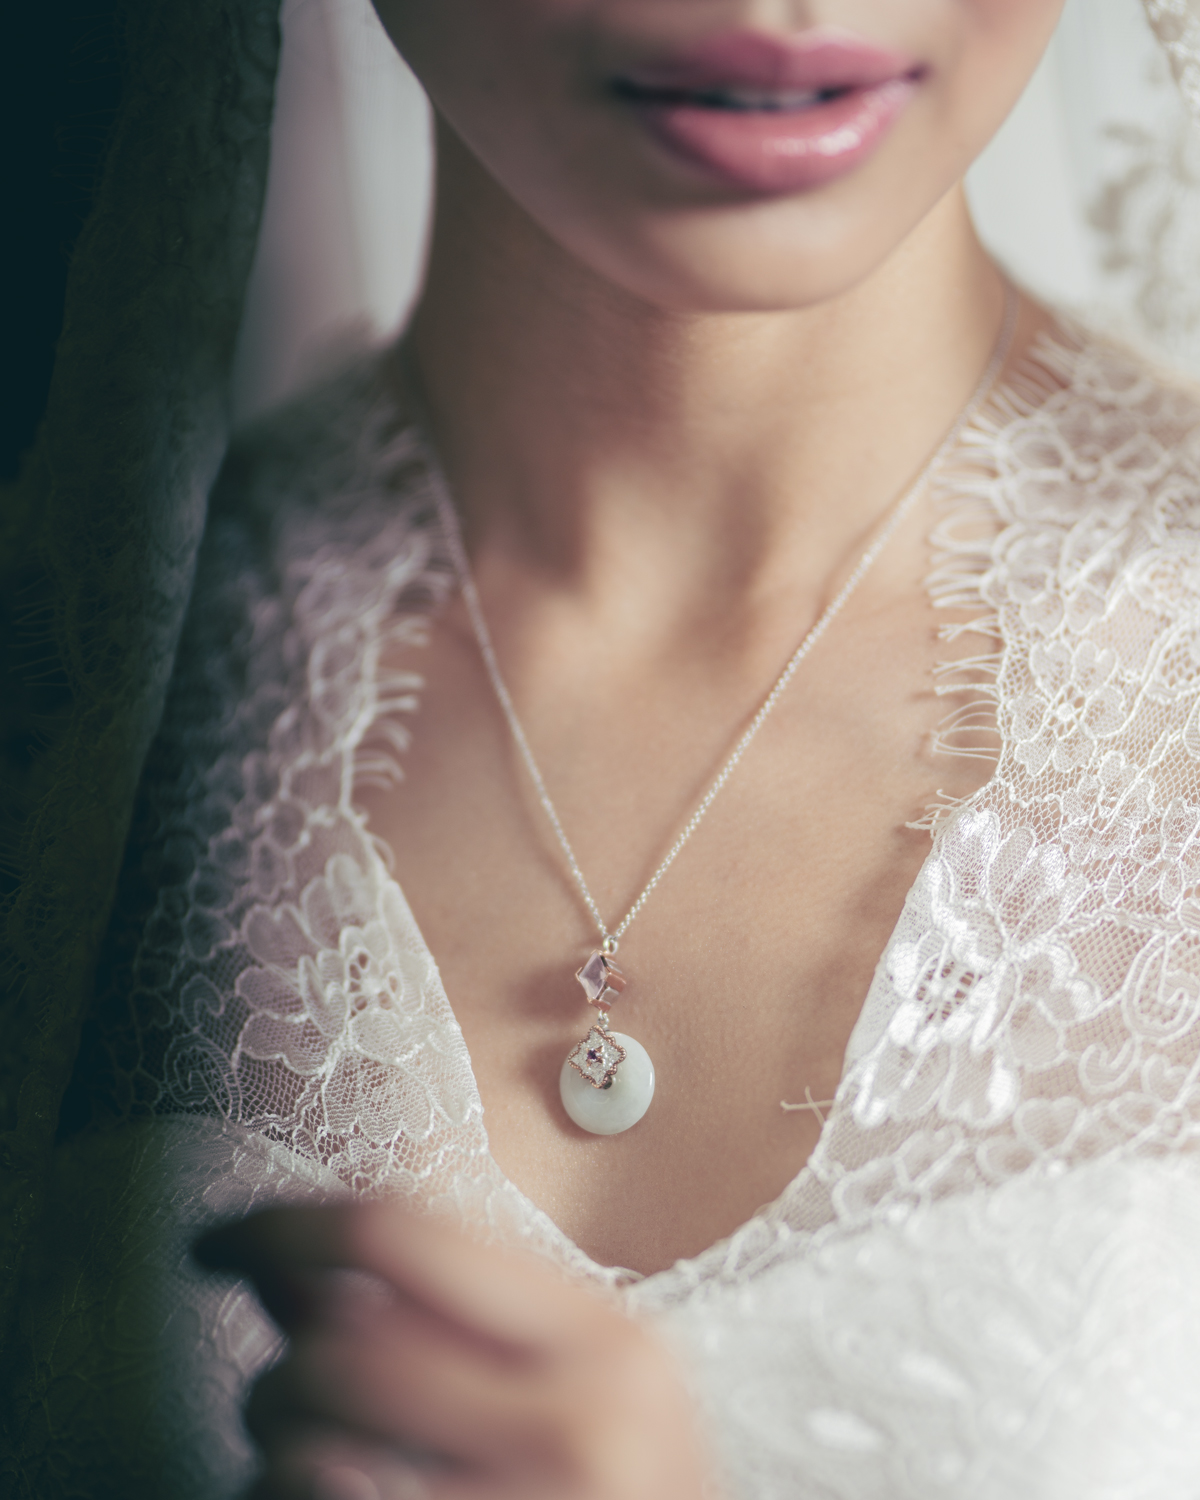 The bride wears Choo Yilin's Kebaya Jade Donut Necklace in solid gold, framed in silhouettes of delicate lace.